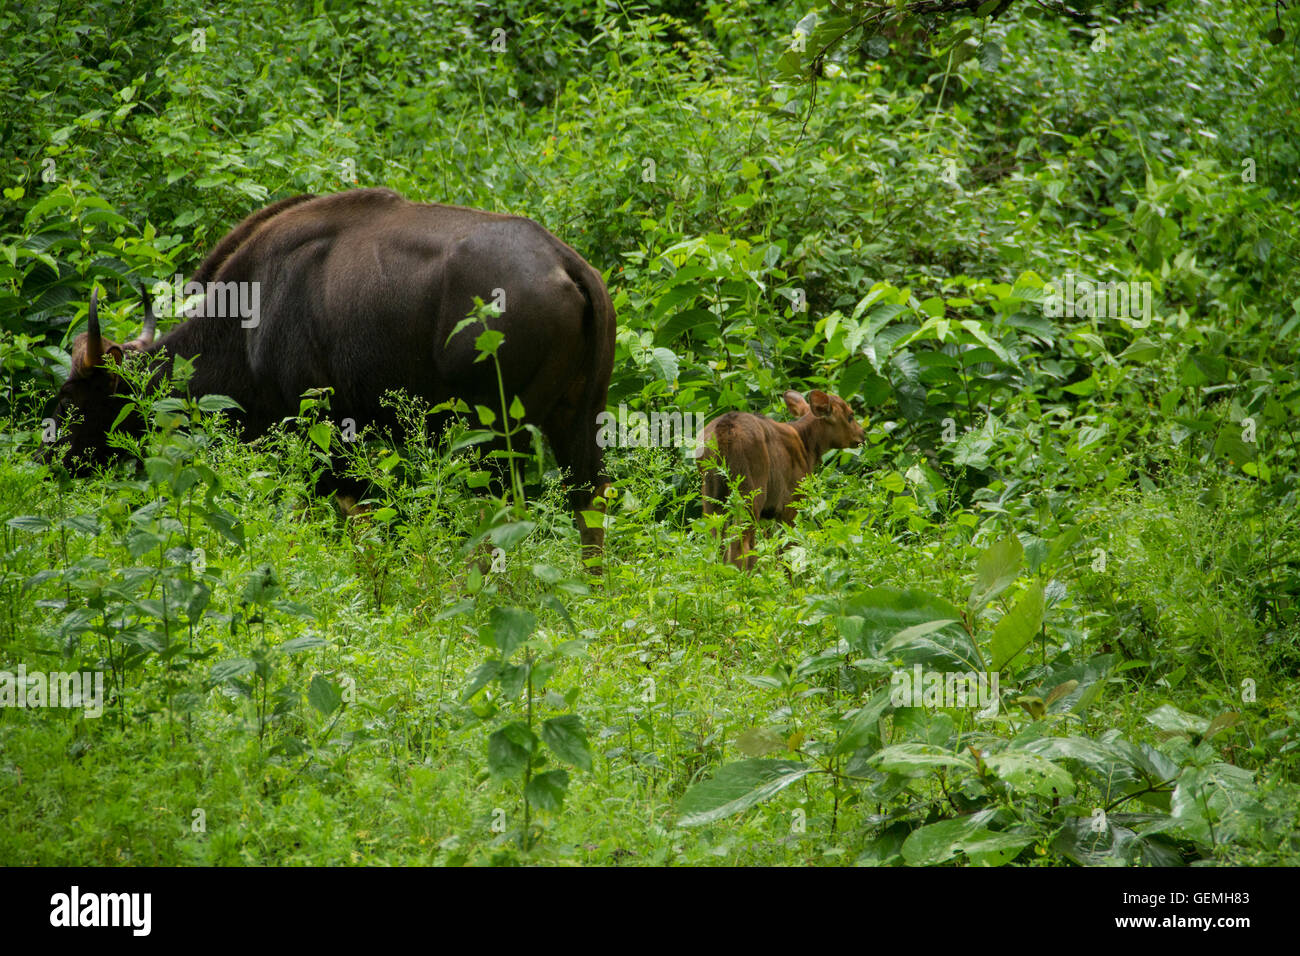 The Gaur family, mother and calf in lush green forest Stock Photo